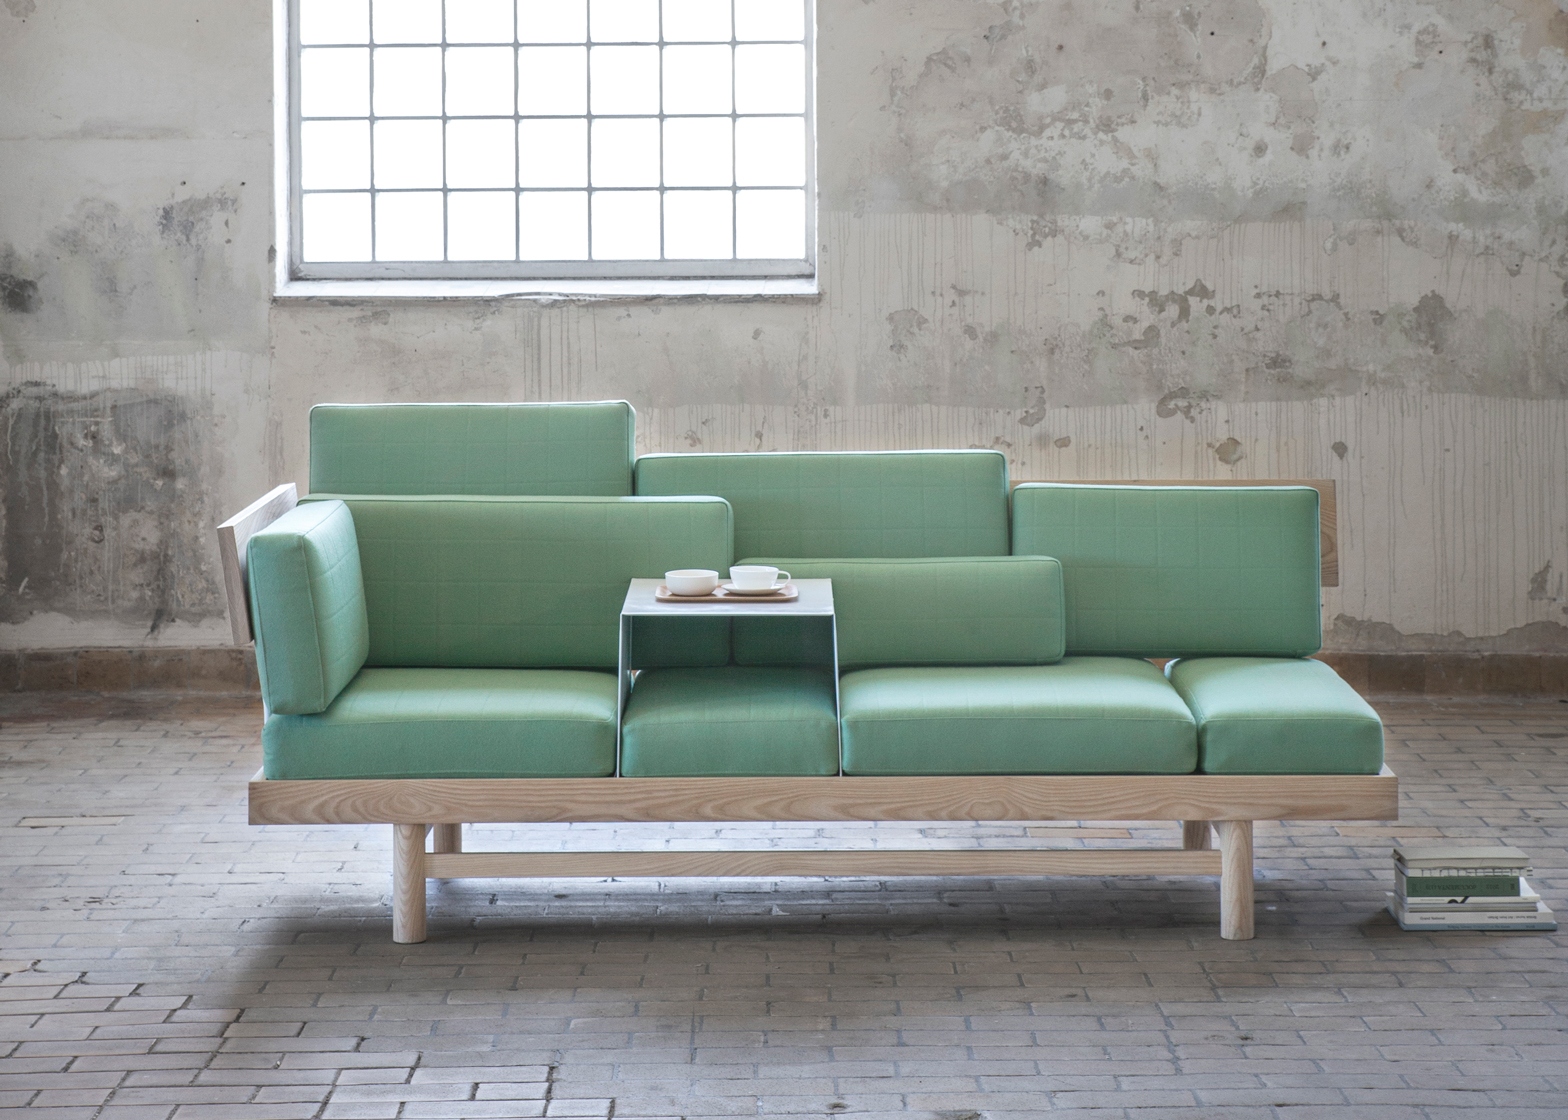 Dorme sofa bed by Silje Nesdal